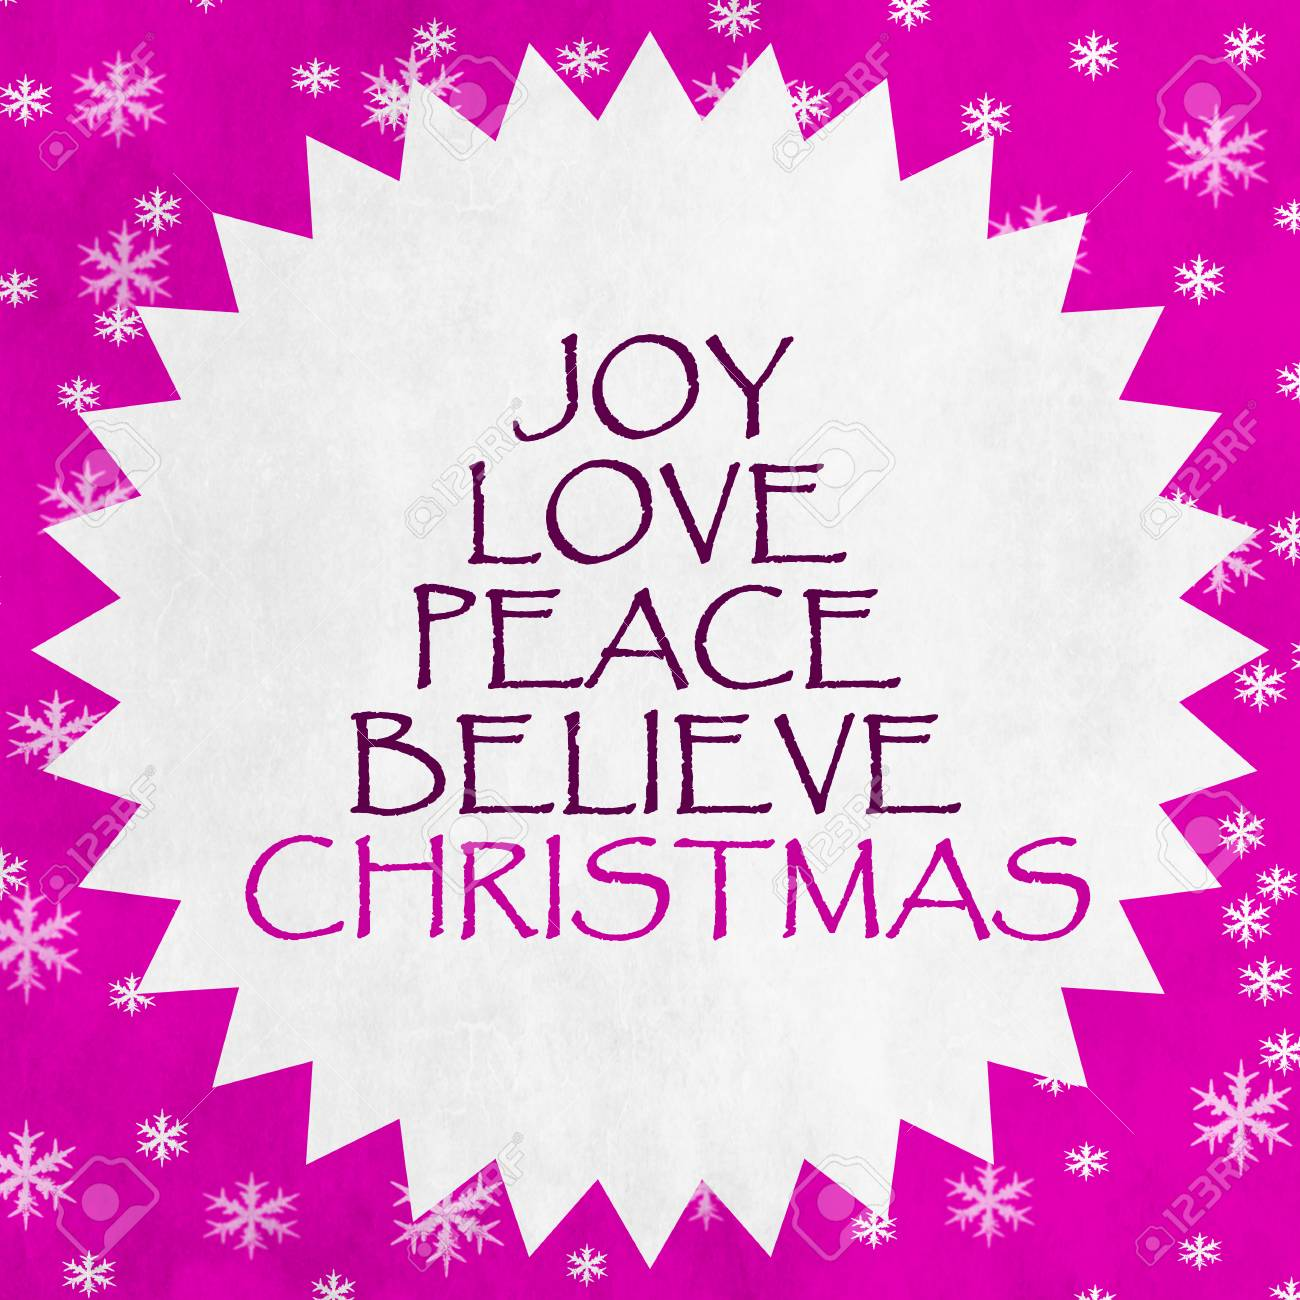 Merry Christmas Season Greetings Quote Stock Photo Picture And